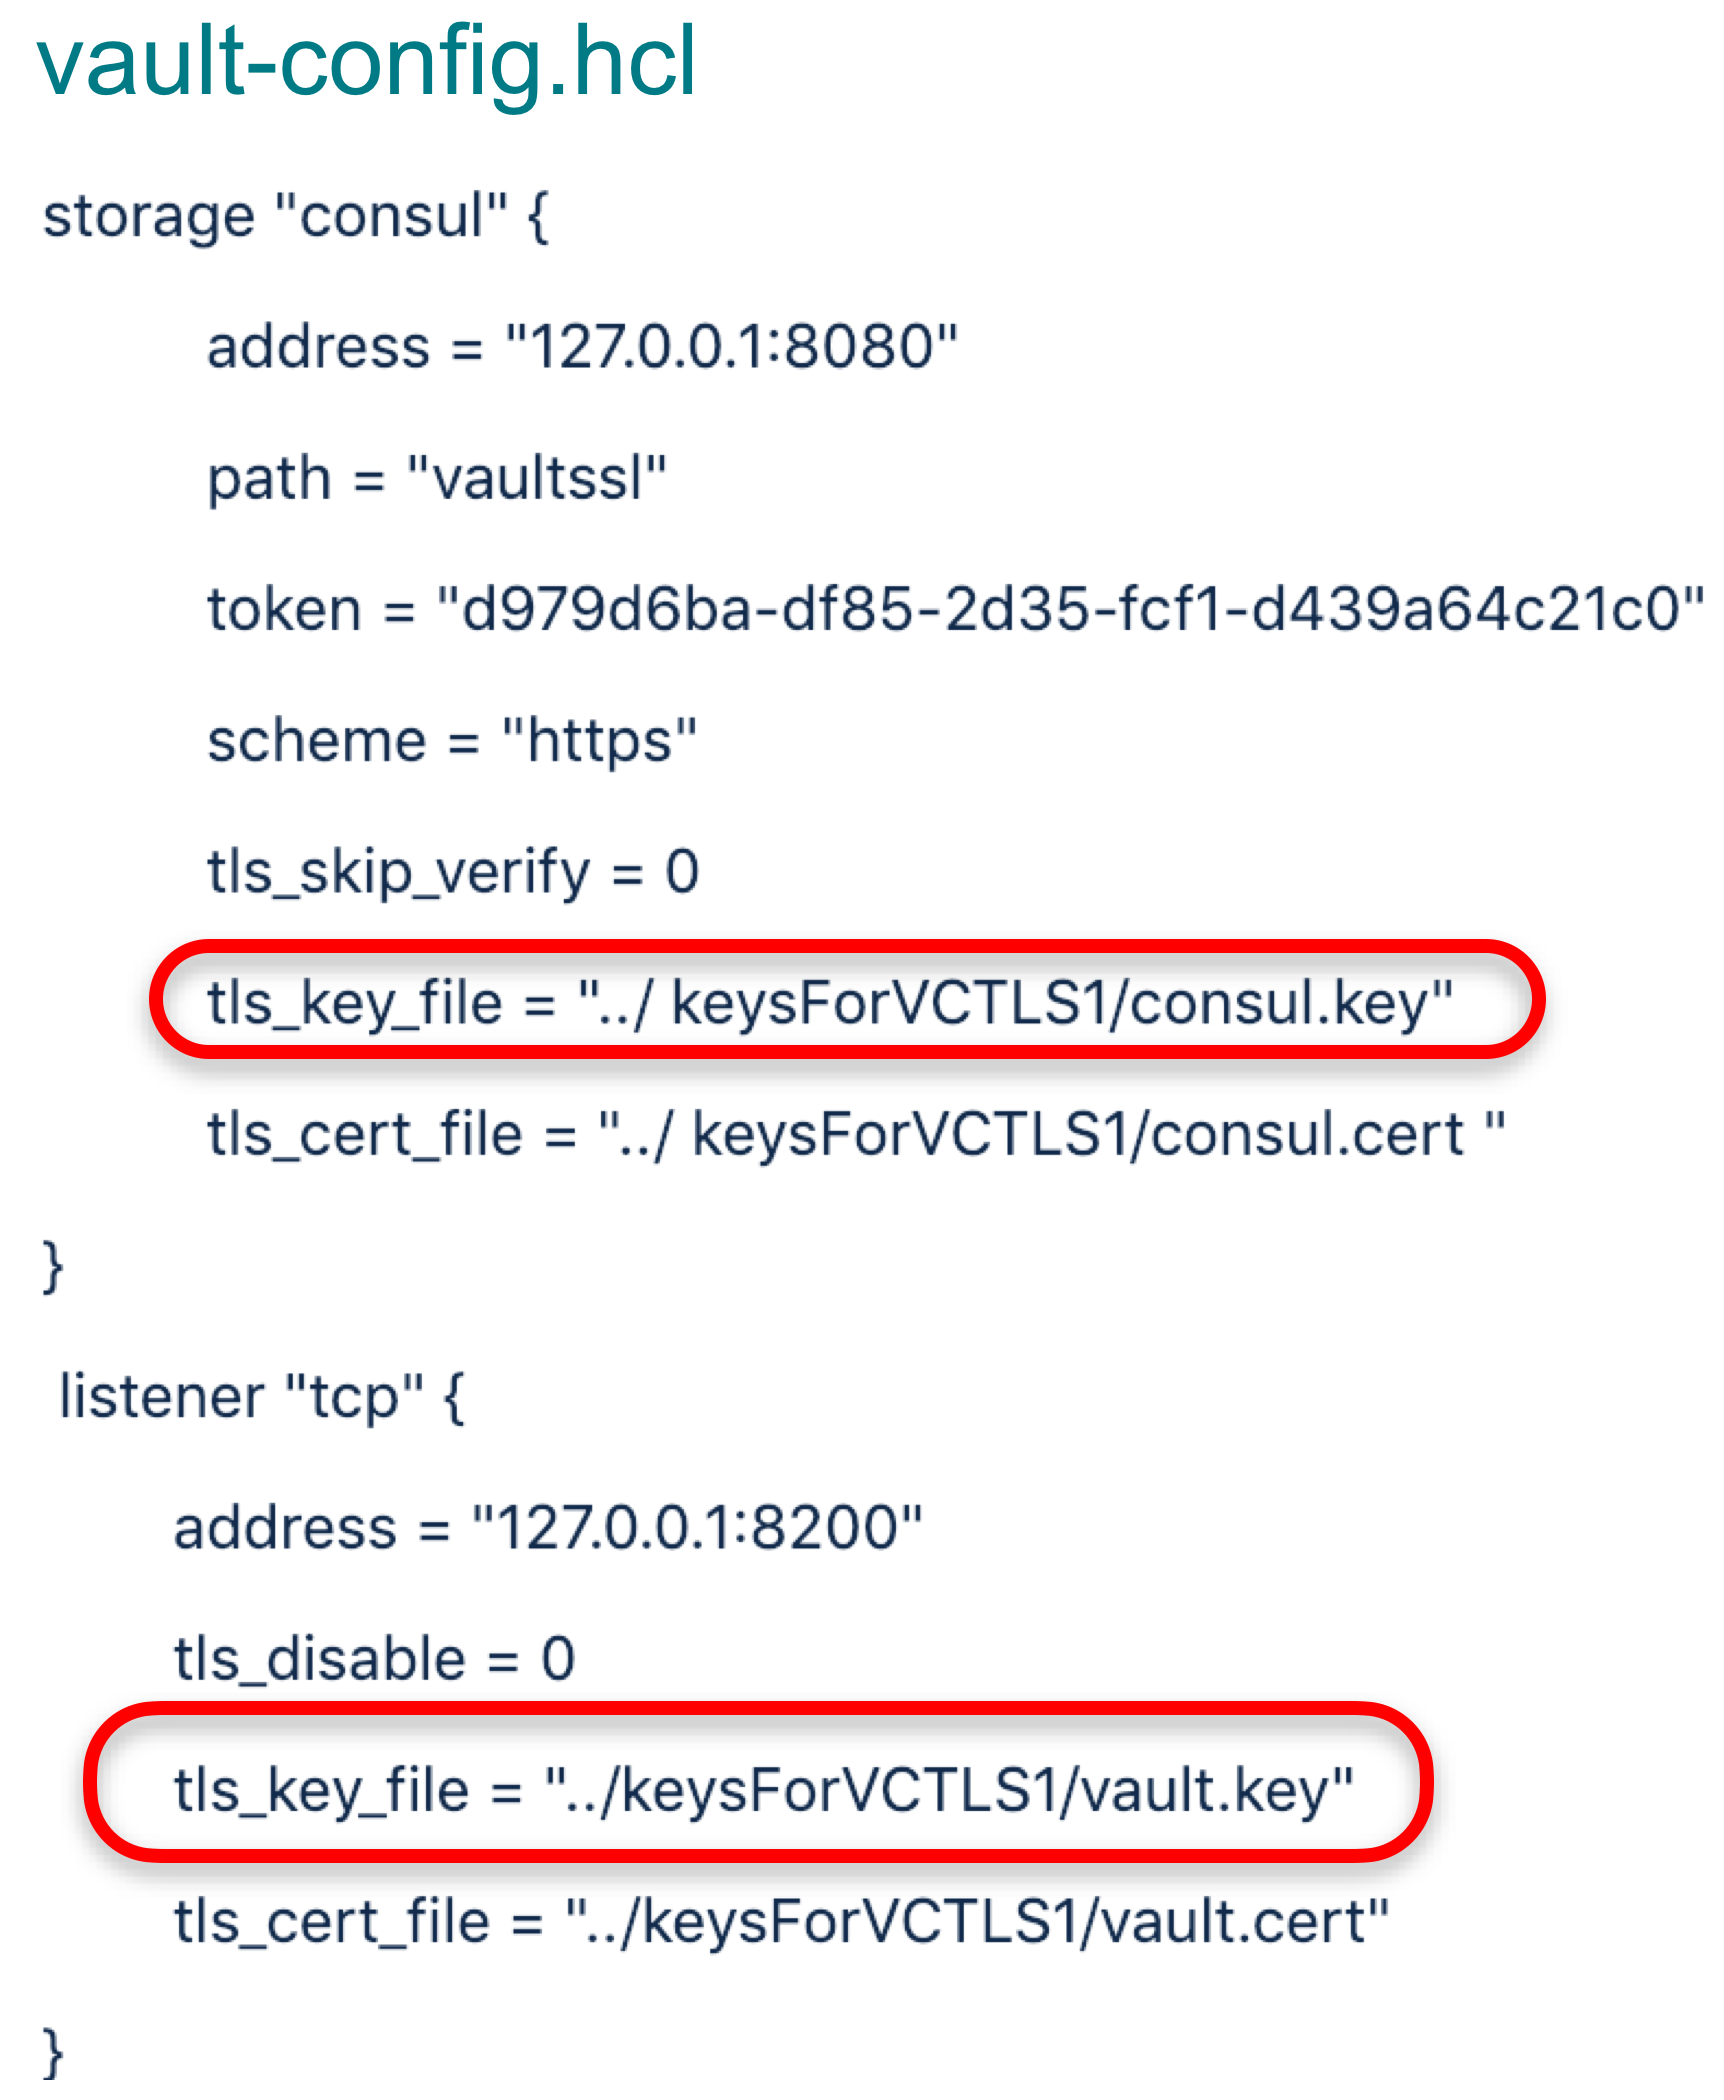 The TLS private key is stored on the host. Obtaining it enables an attacker to spin up a malicious Vault server instance, or a service with a similar API, and convince clients to connect and send their secrets to the attacker.